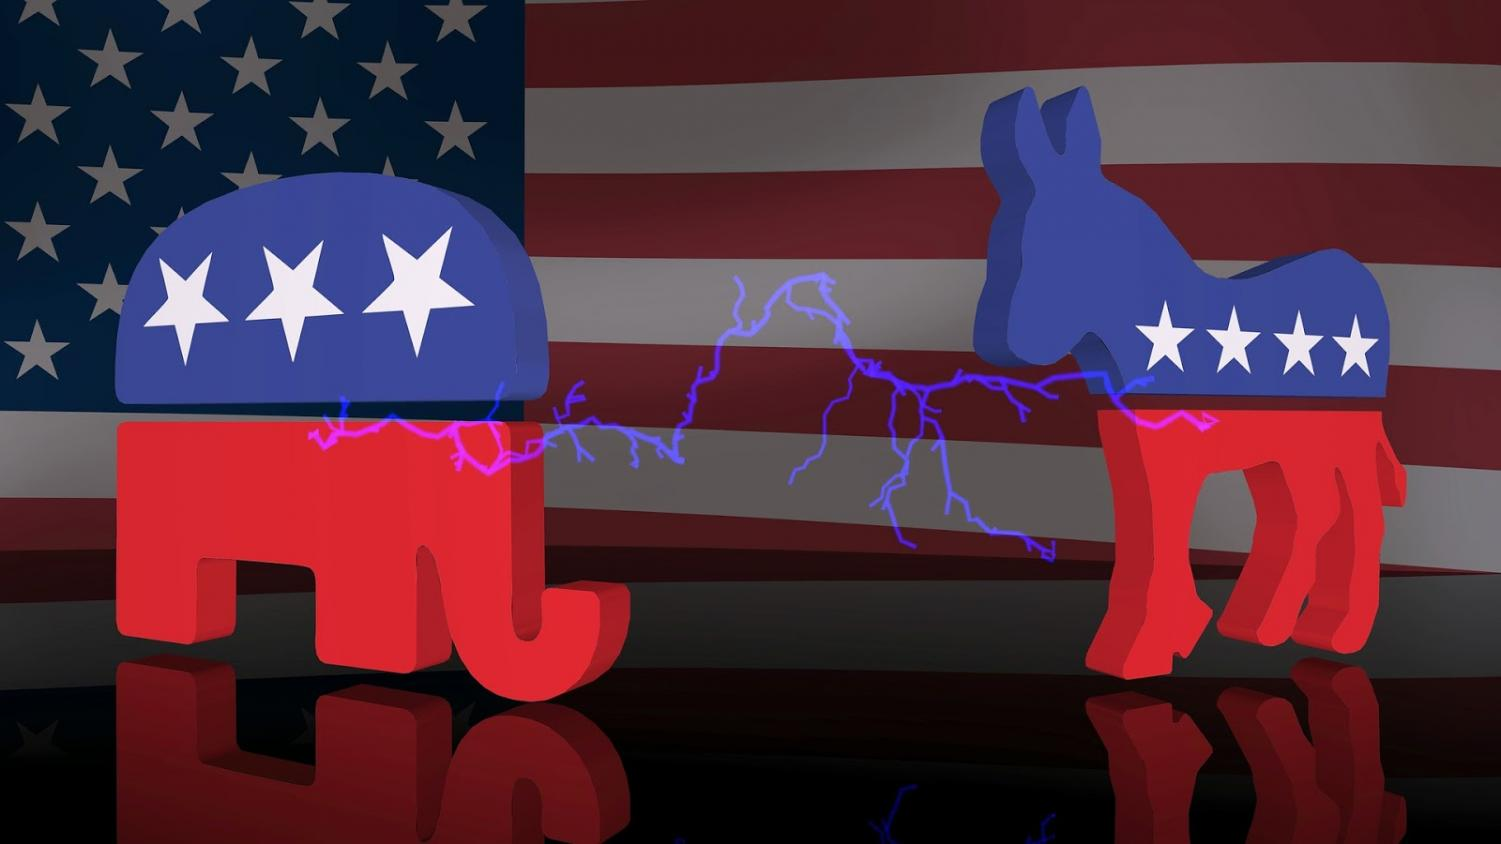 Republicans and Democrats will face off again during this midterm election, everyone is encouraged to vote. (Photo courtesy of Pixabay)